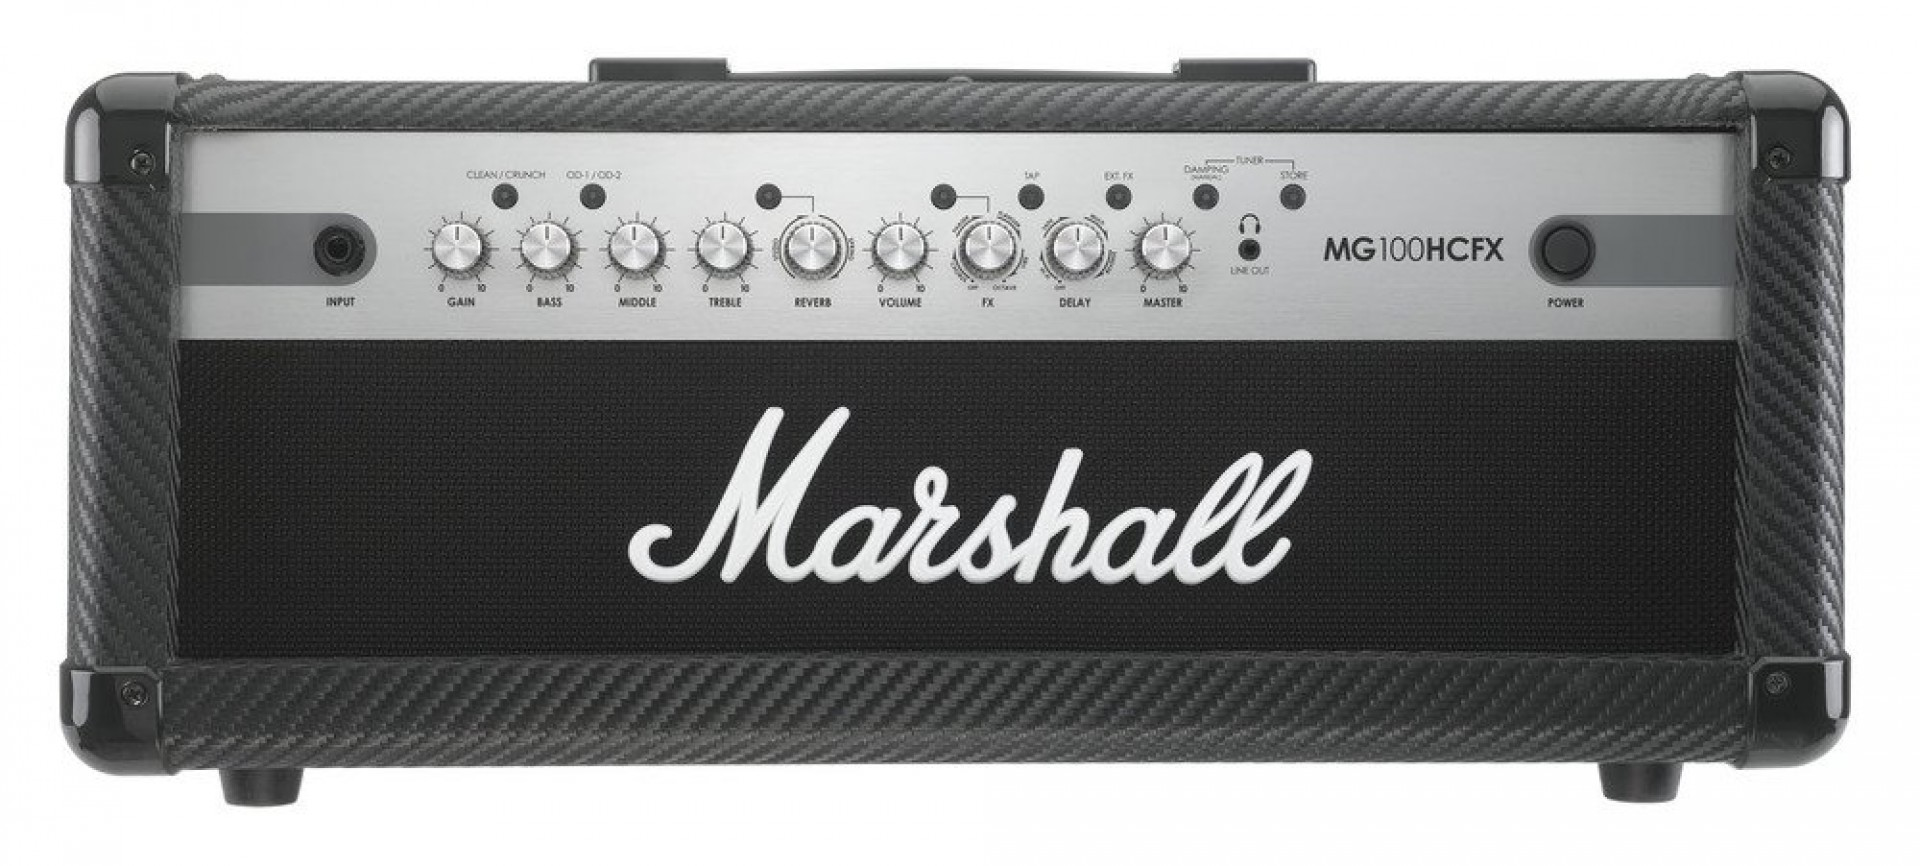 MARSHALL MG100HCFX-E AMP